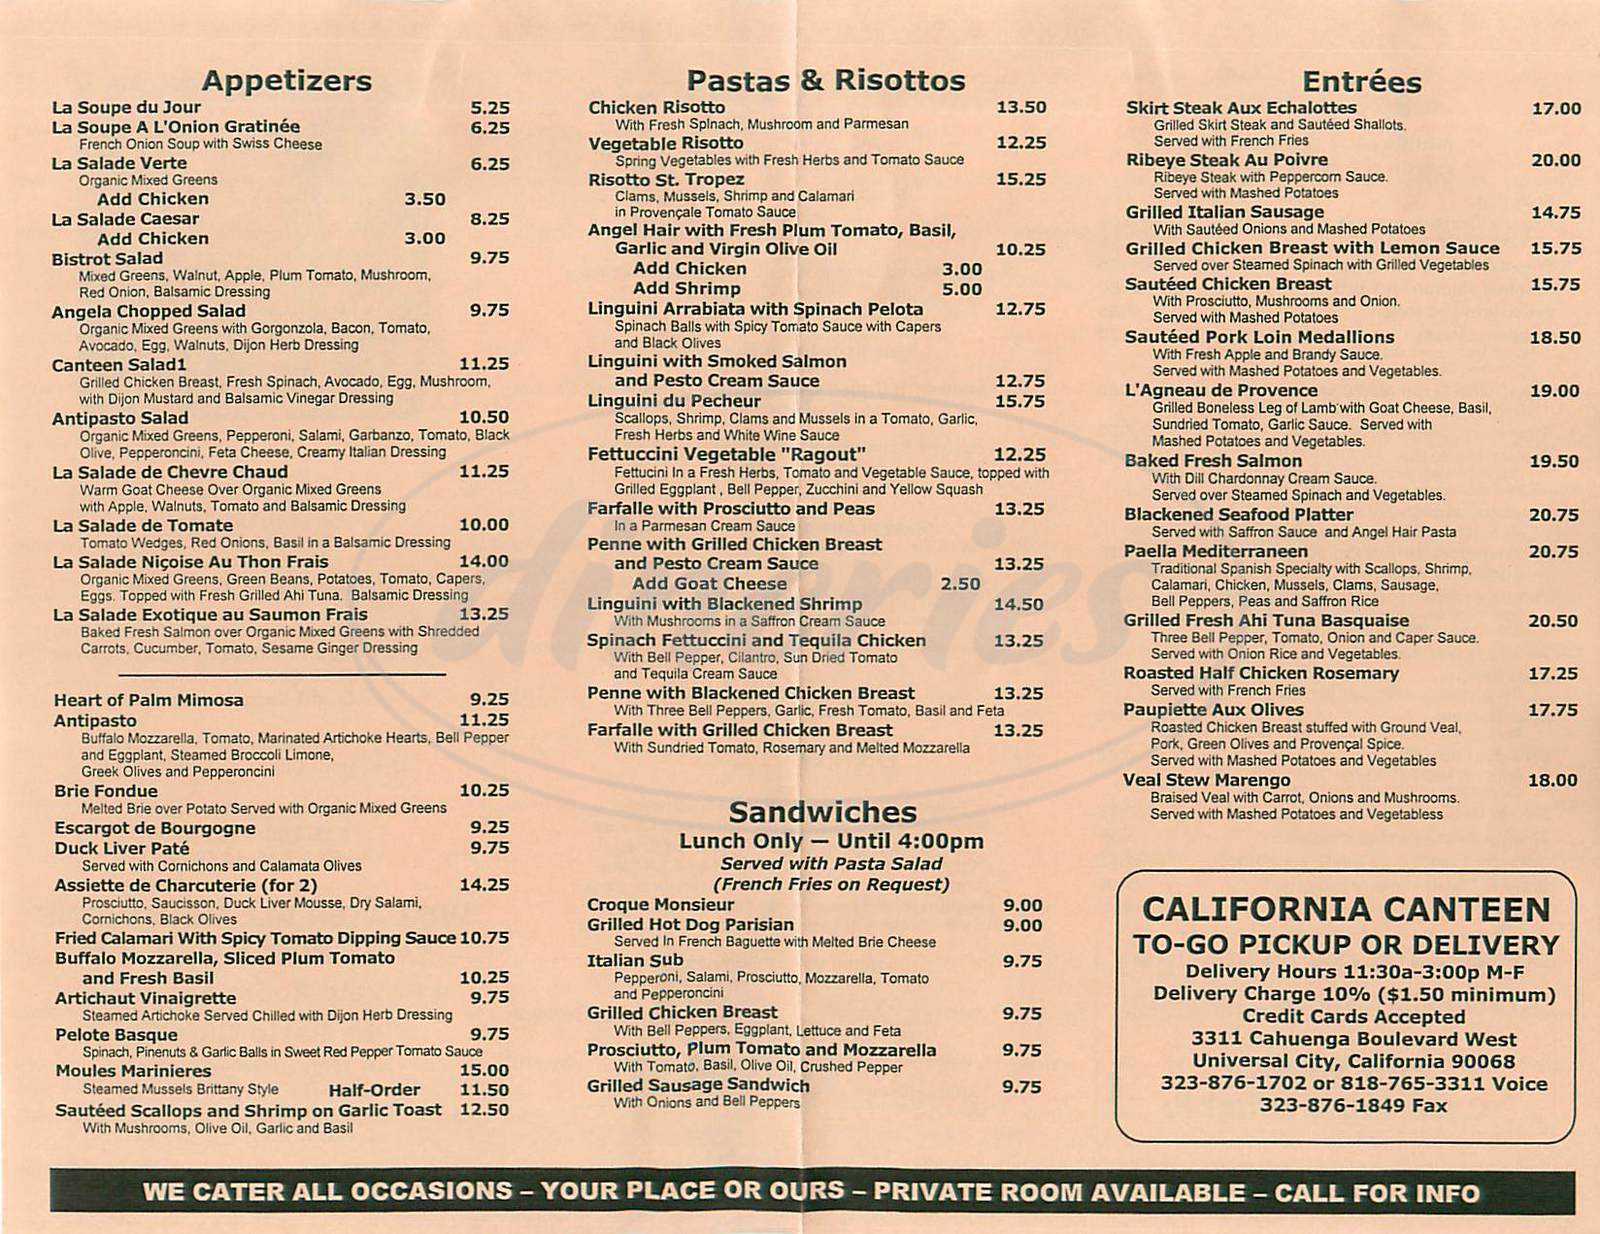 menu for California Canteen